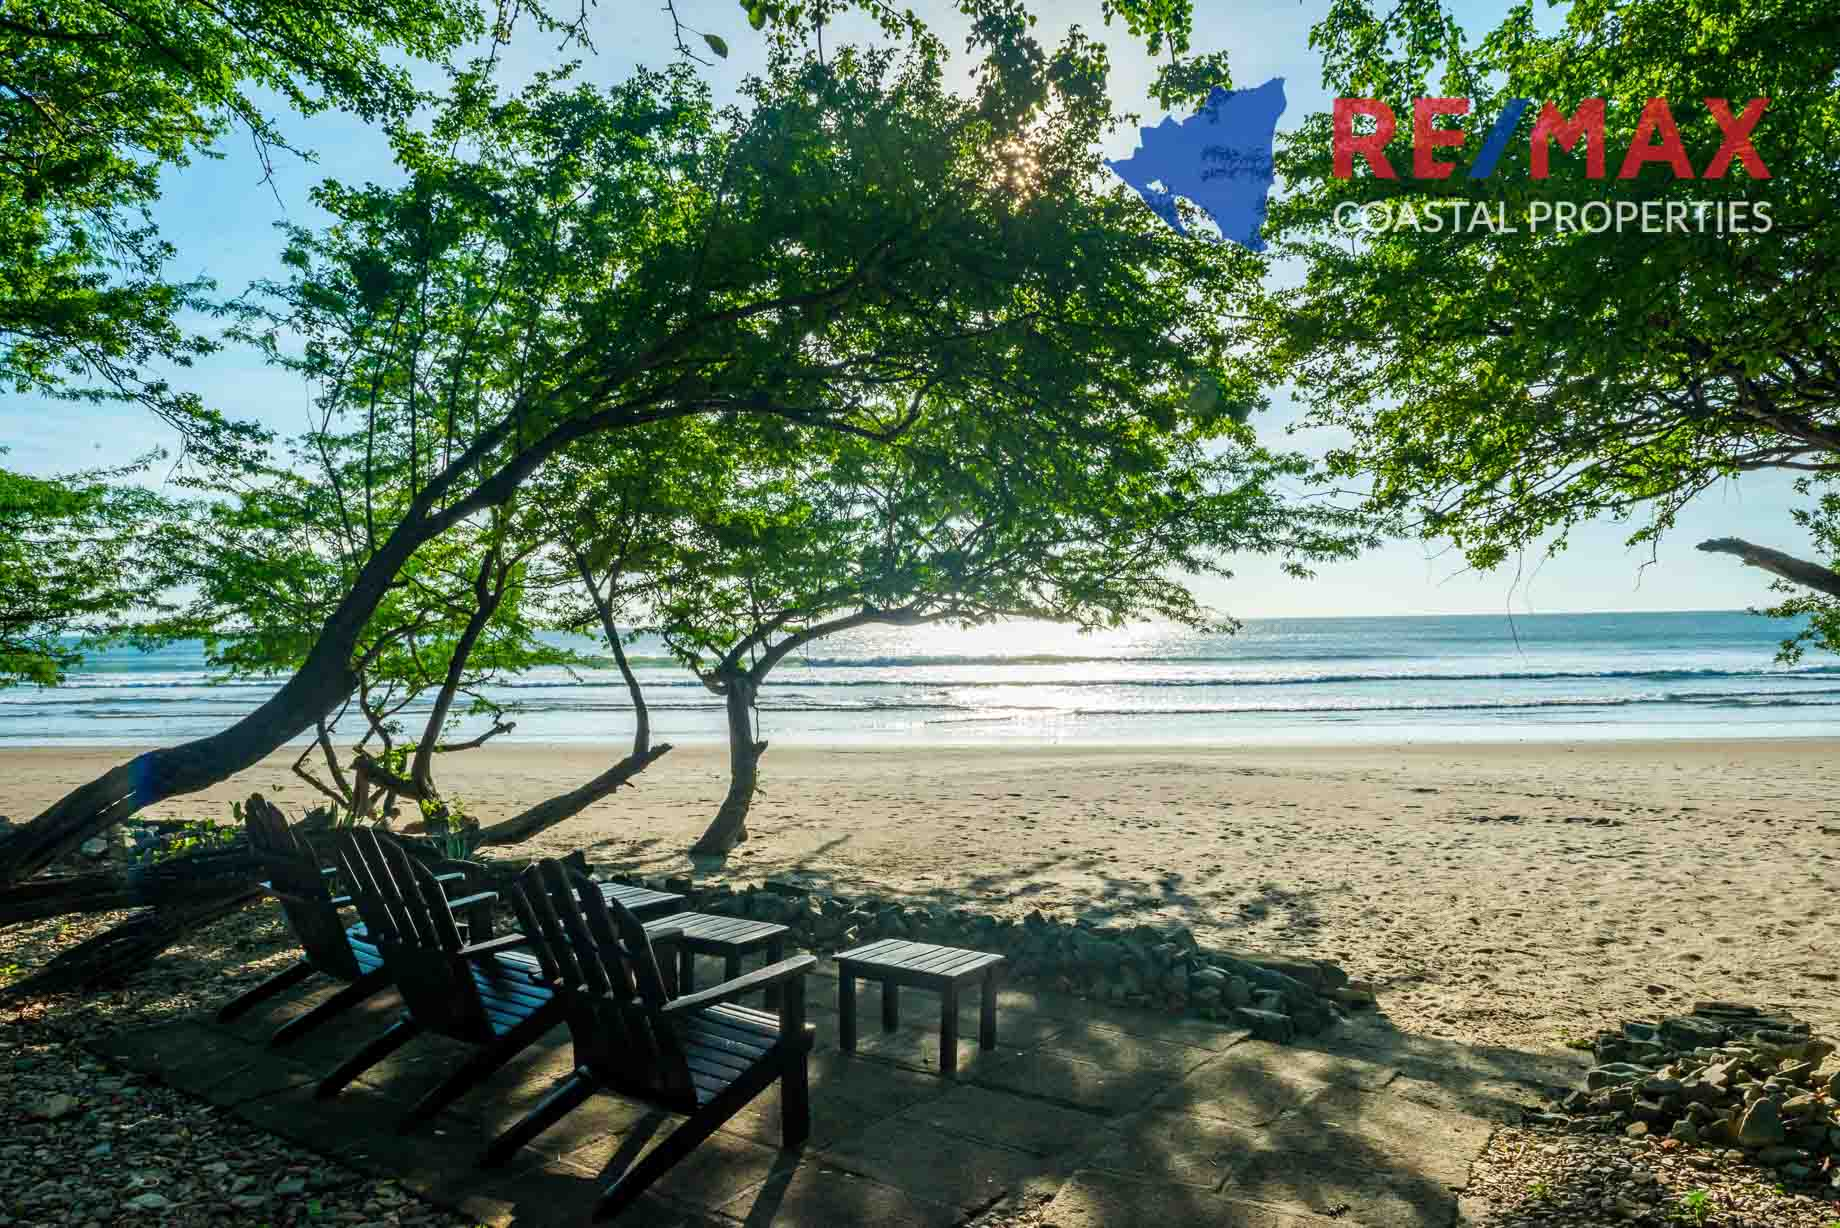 https://property-nicaragua.com/pedrodev/wp-content/uploads/2012/06/Playa-Coco-Townhome-2-REMAX-Coastal-Properties-40.jpg